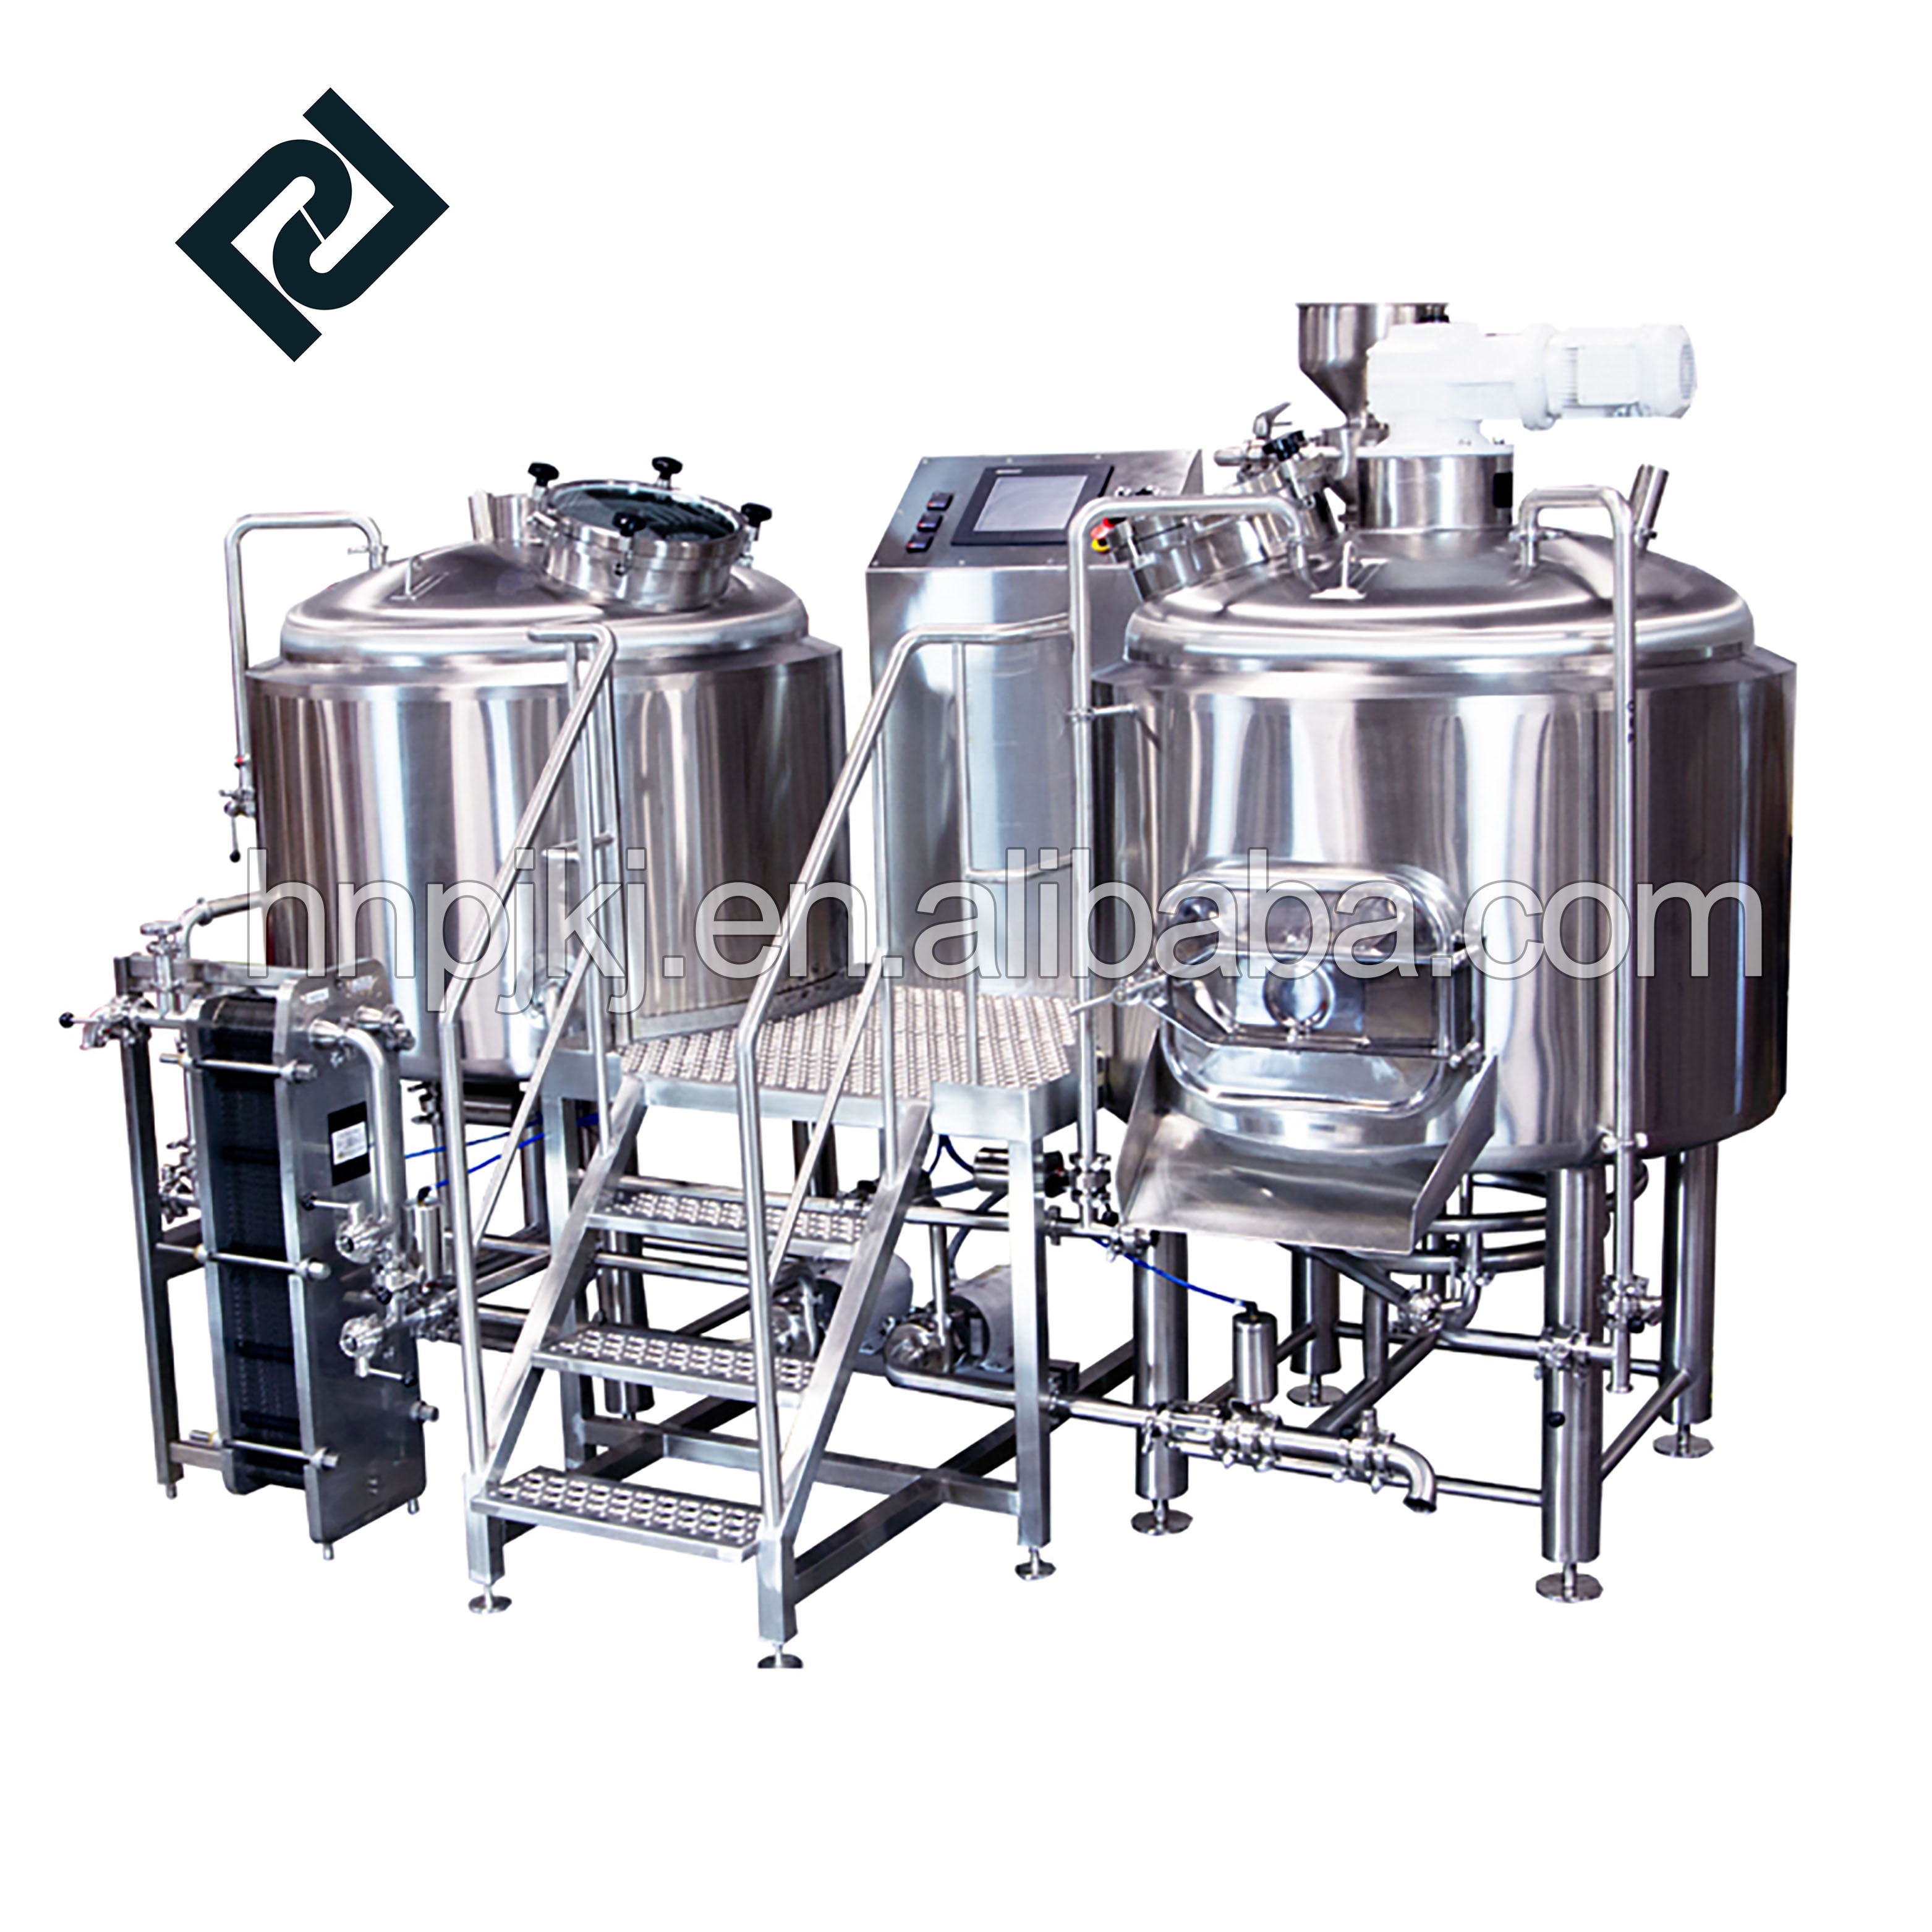 10hl-50hl craft beer brewing microbrewery fermenting equipment  factory price